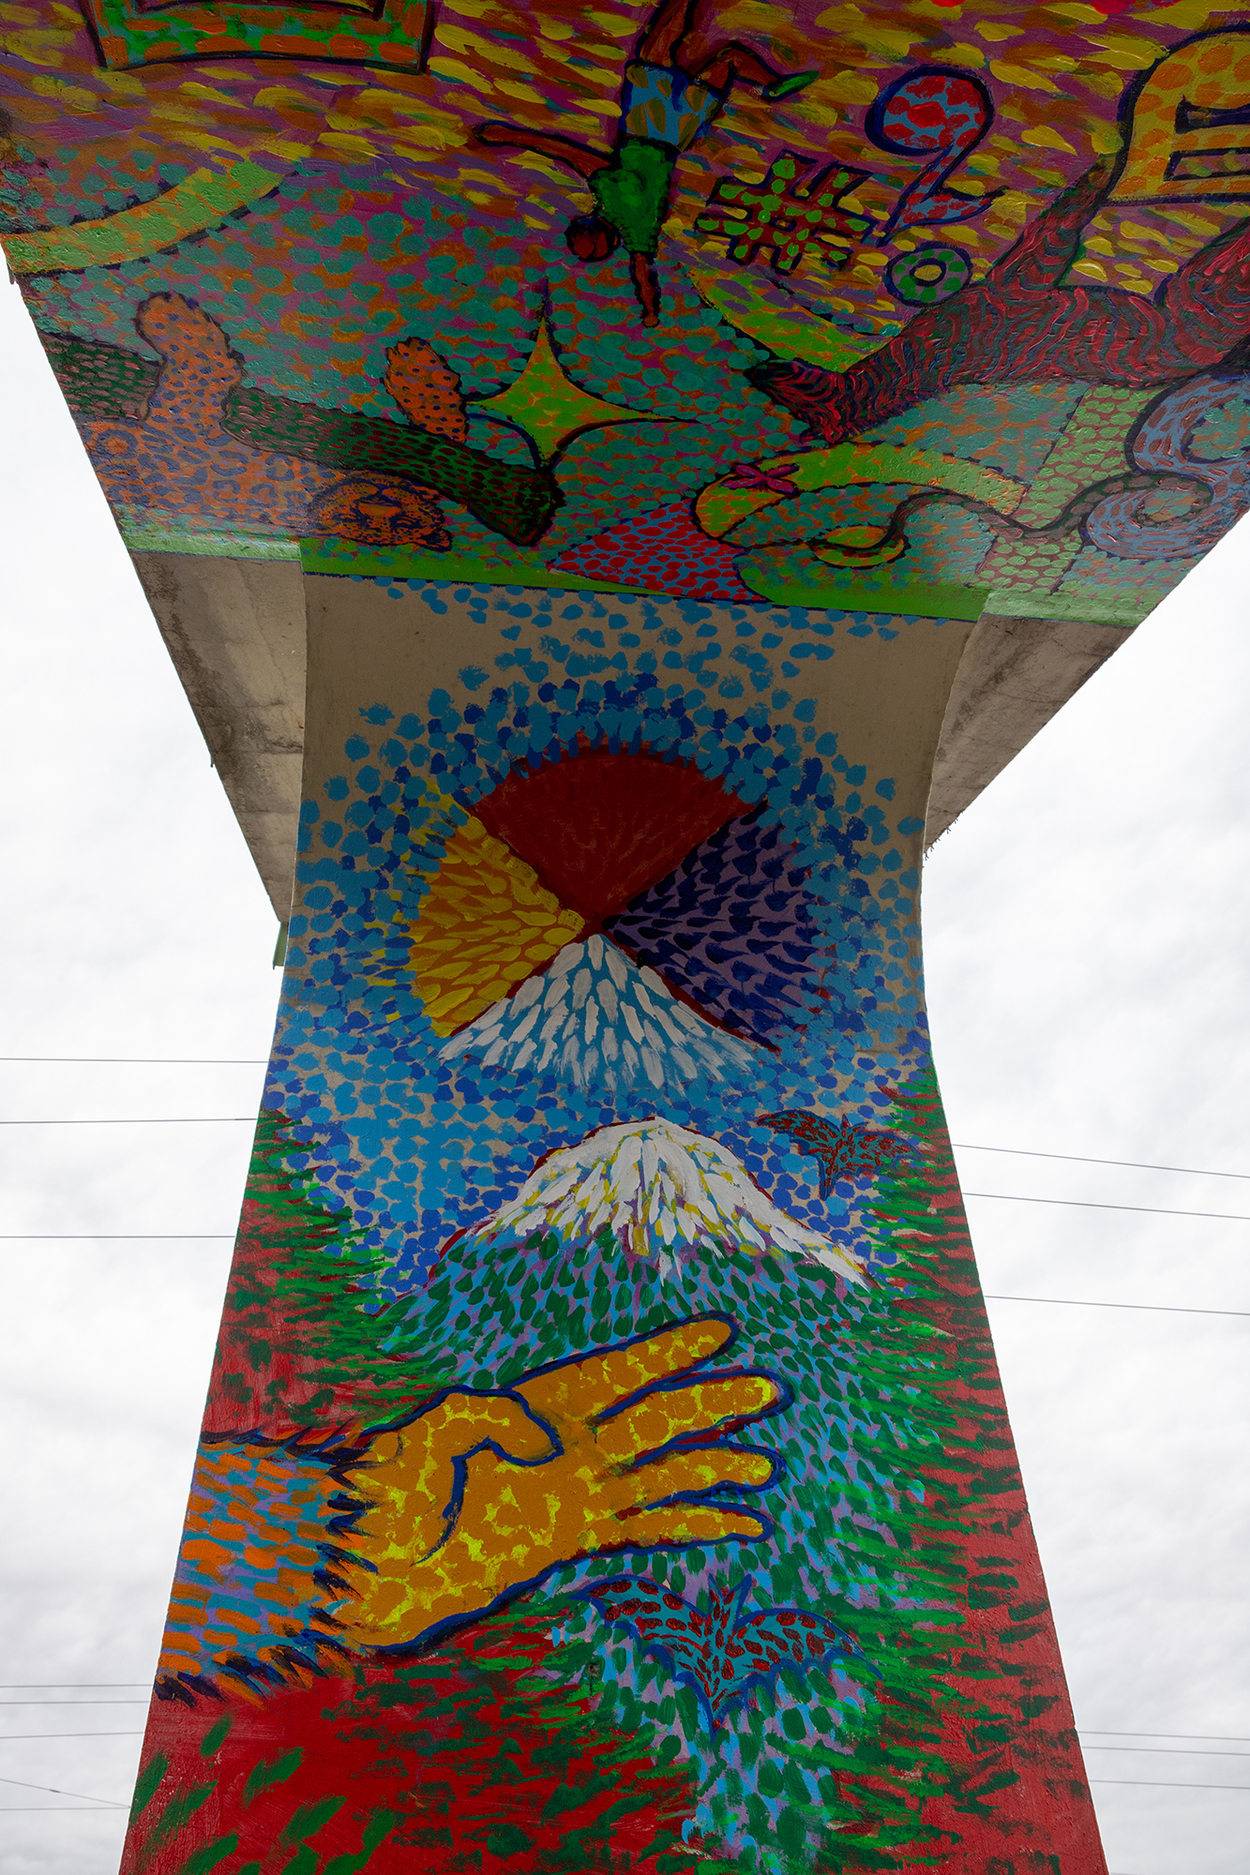 a closeup of a mural painted on a pedestrian bridge with a colorful medley of images